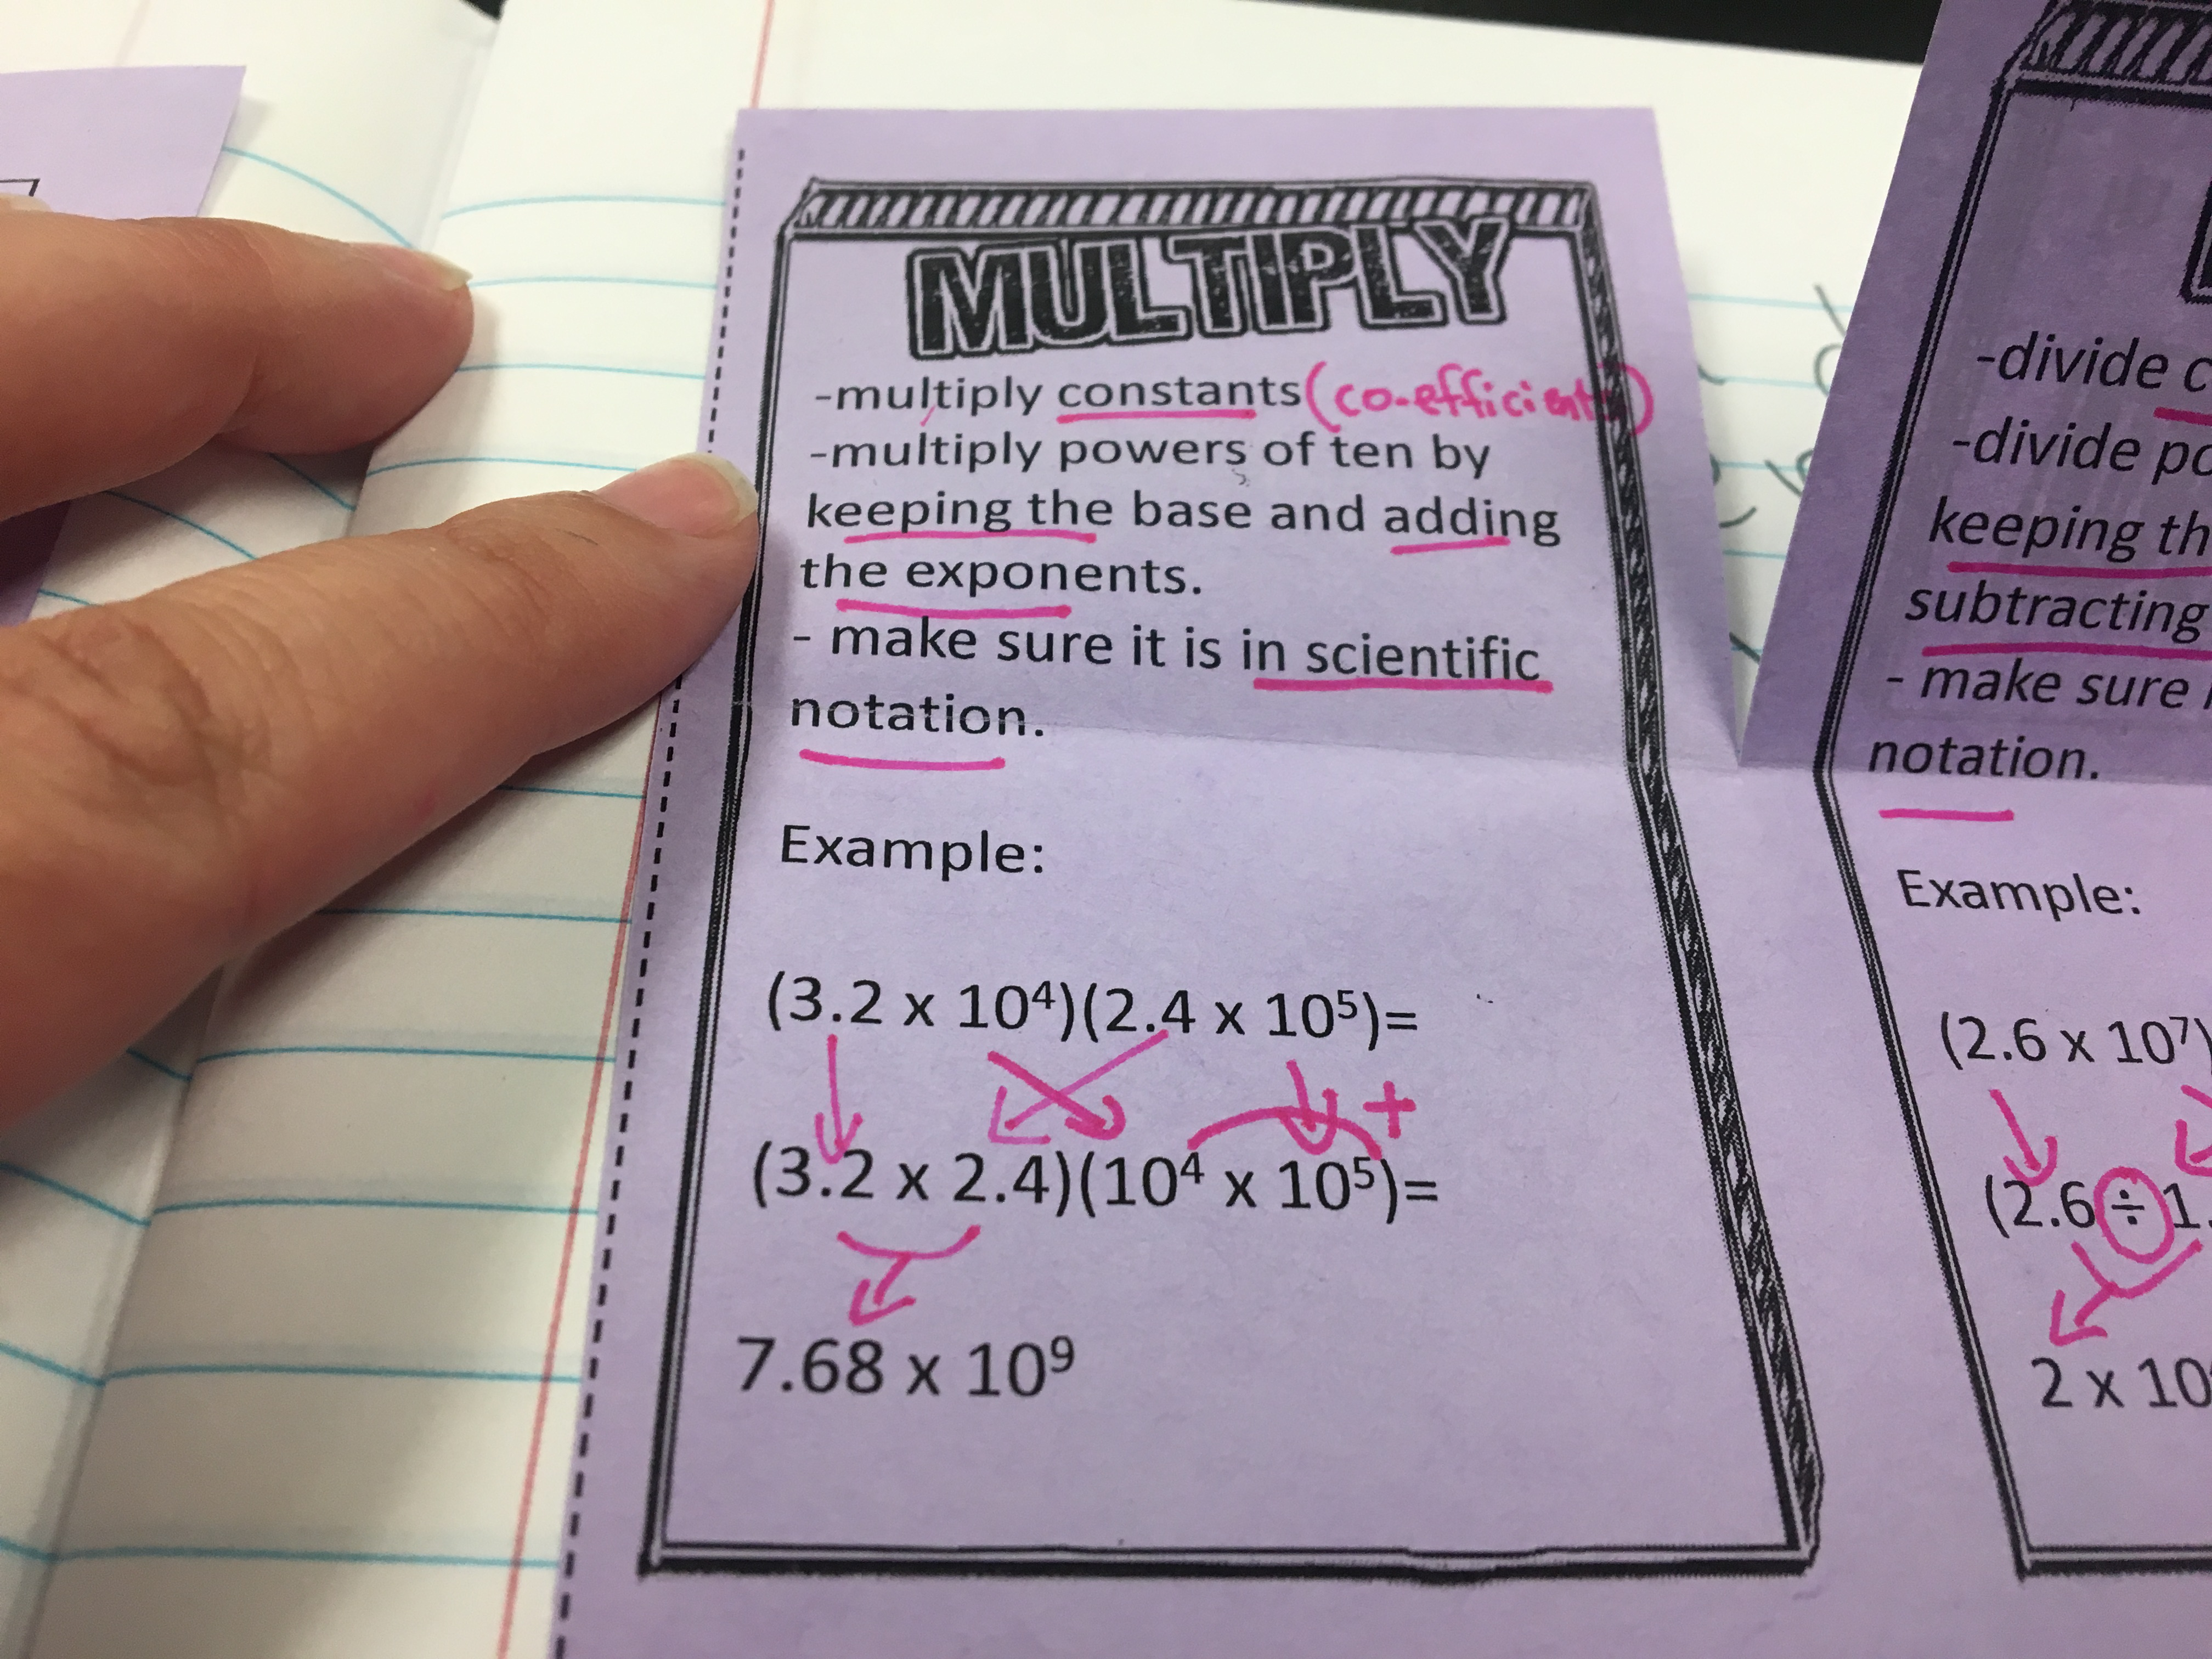 Beginning the operations with scientific notation unit with a discovery lab & interactive notes. Great way to start the unit, get students curious, and give students a clear understanding of this new concept.